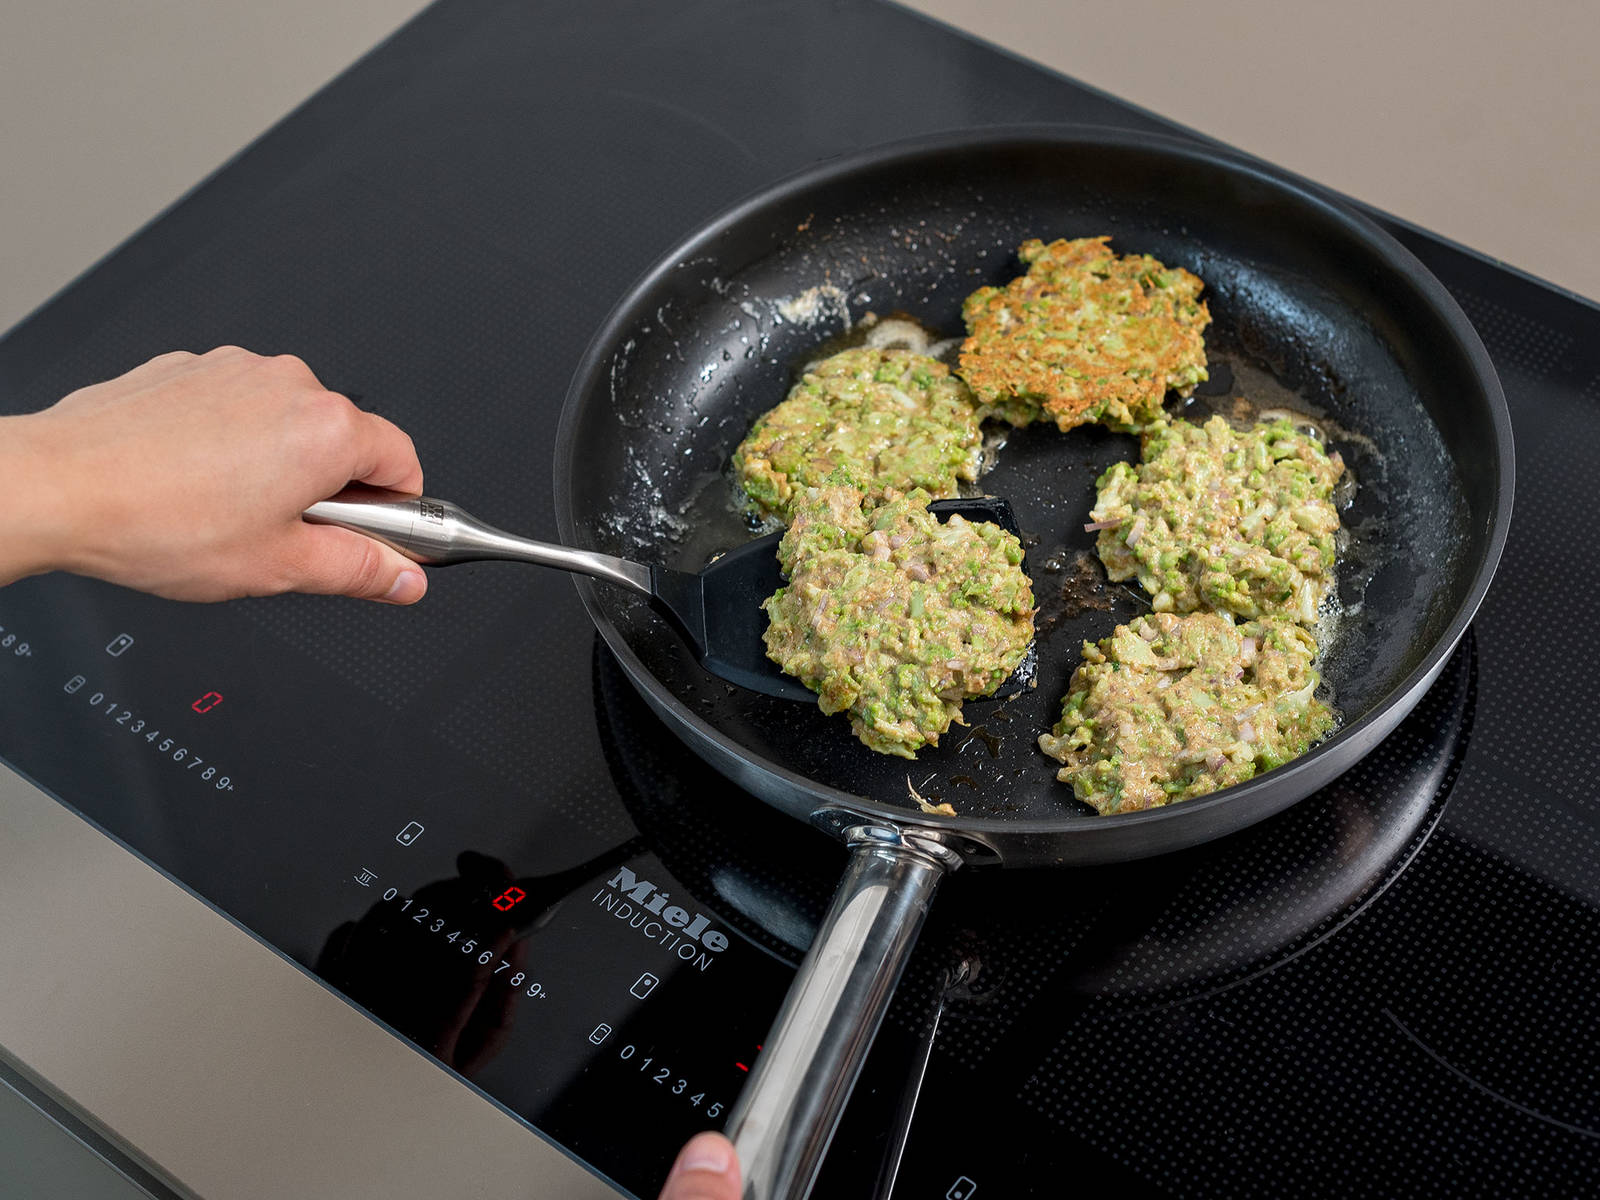 Heat oil in a frying pan set over medium-high heat, add a spoonful dough, and press gently to flatten slightly into pancakes. Fry the pancakes on both sides until golden brown, then transfer to a paper towel-lined plate to drain slightly. Serve with herb dip and a squeeze of lemon juice to taste. Enjoy!